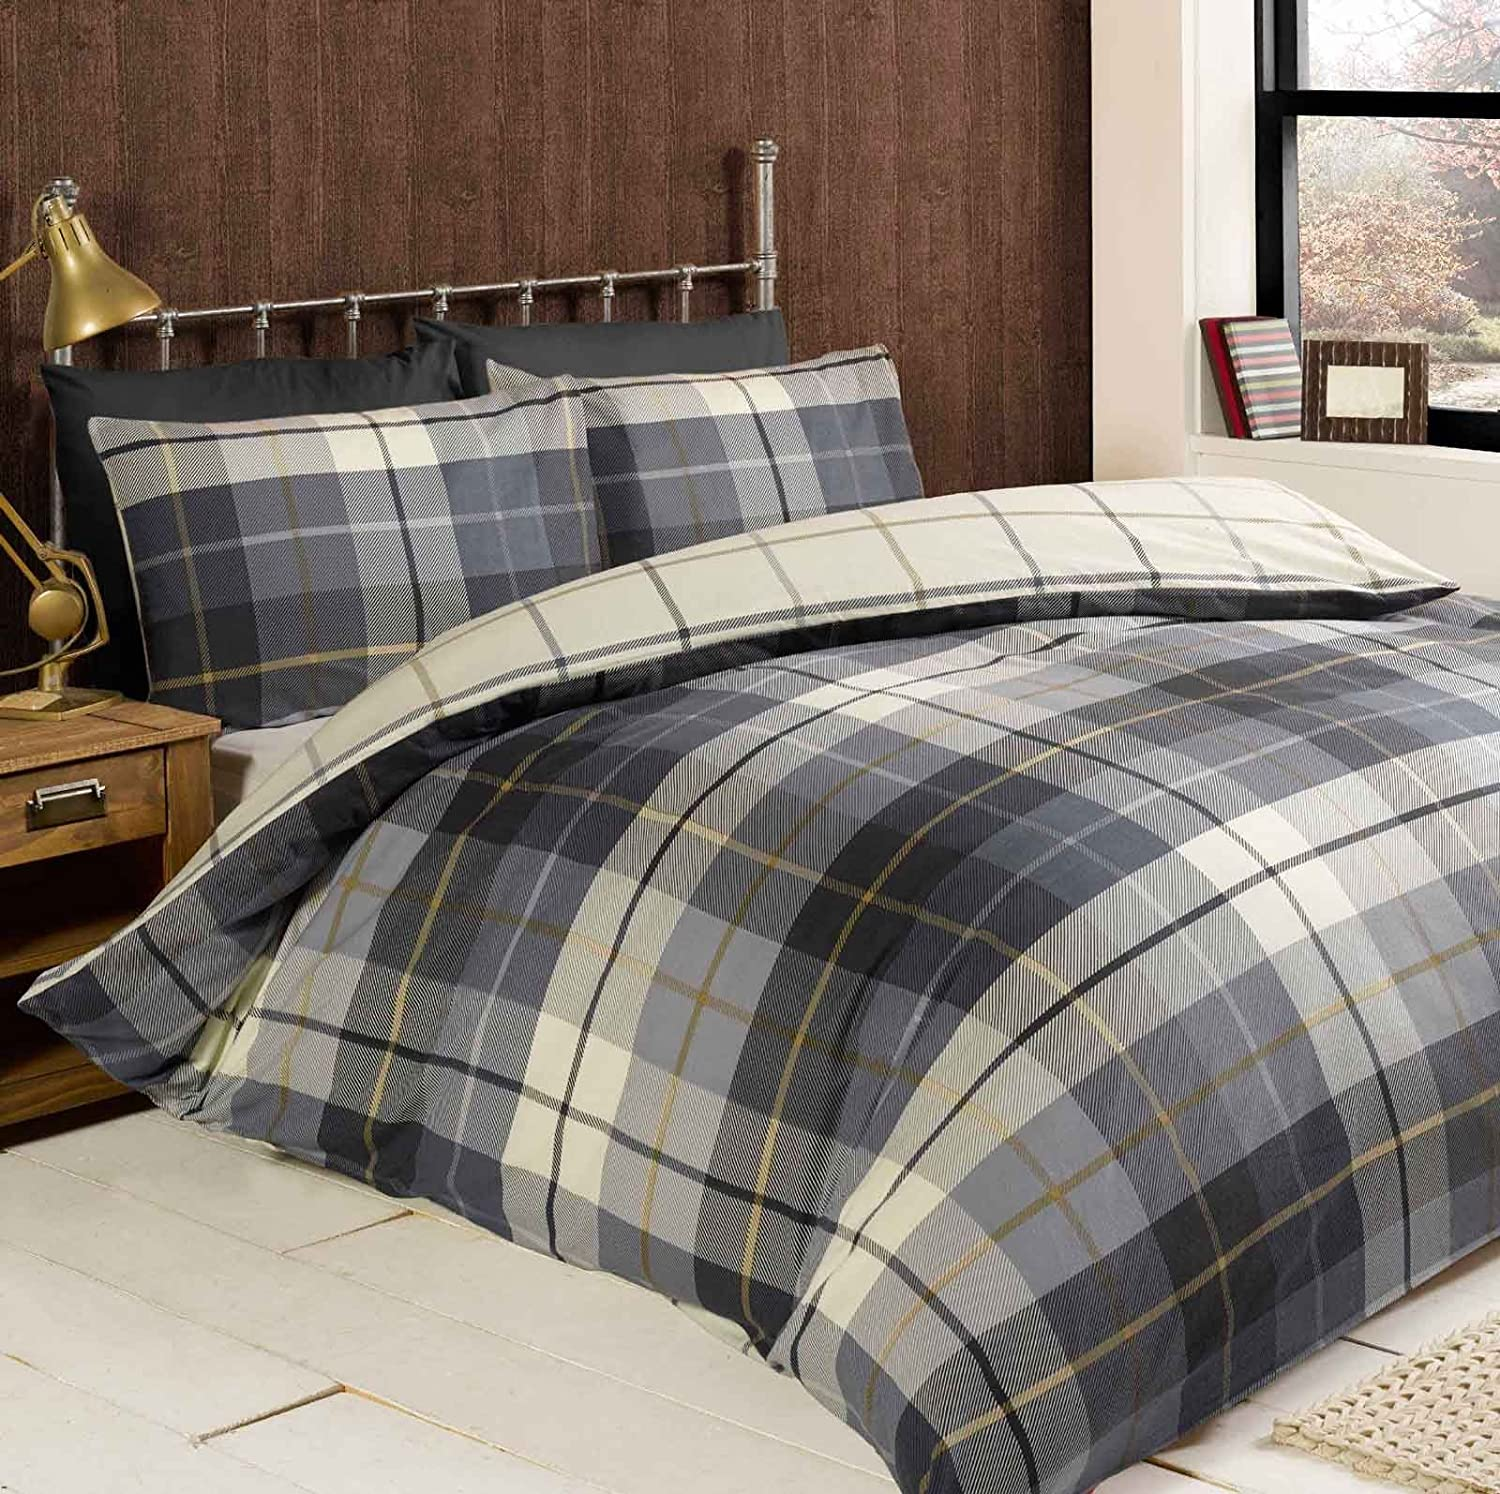 plaid info twin cover flannelette full yellow flannel comforter sale size bedding reg fashion rustic page kohphiphi duvet king by covers